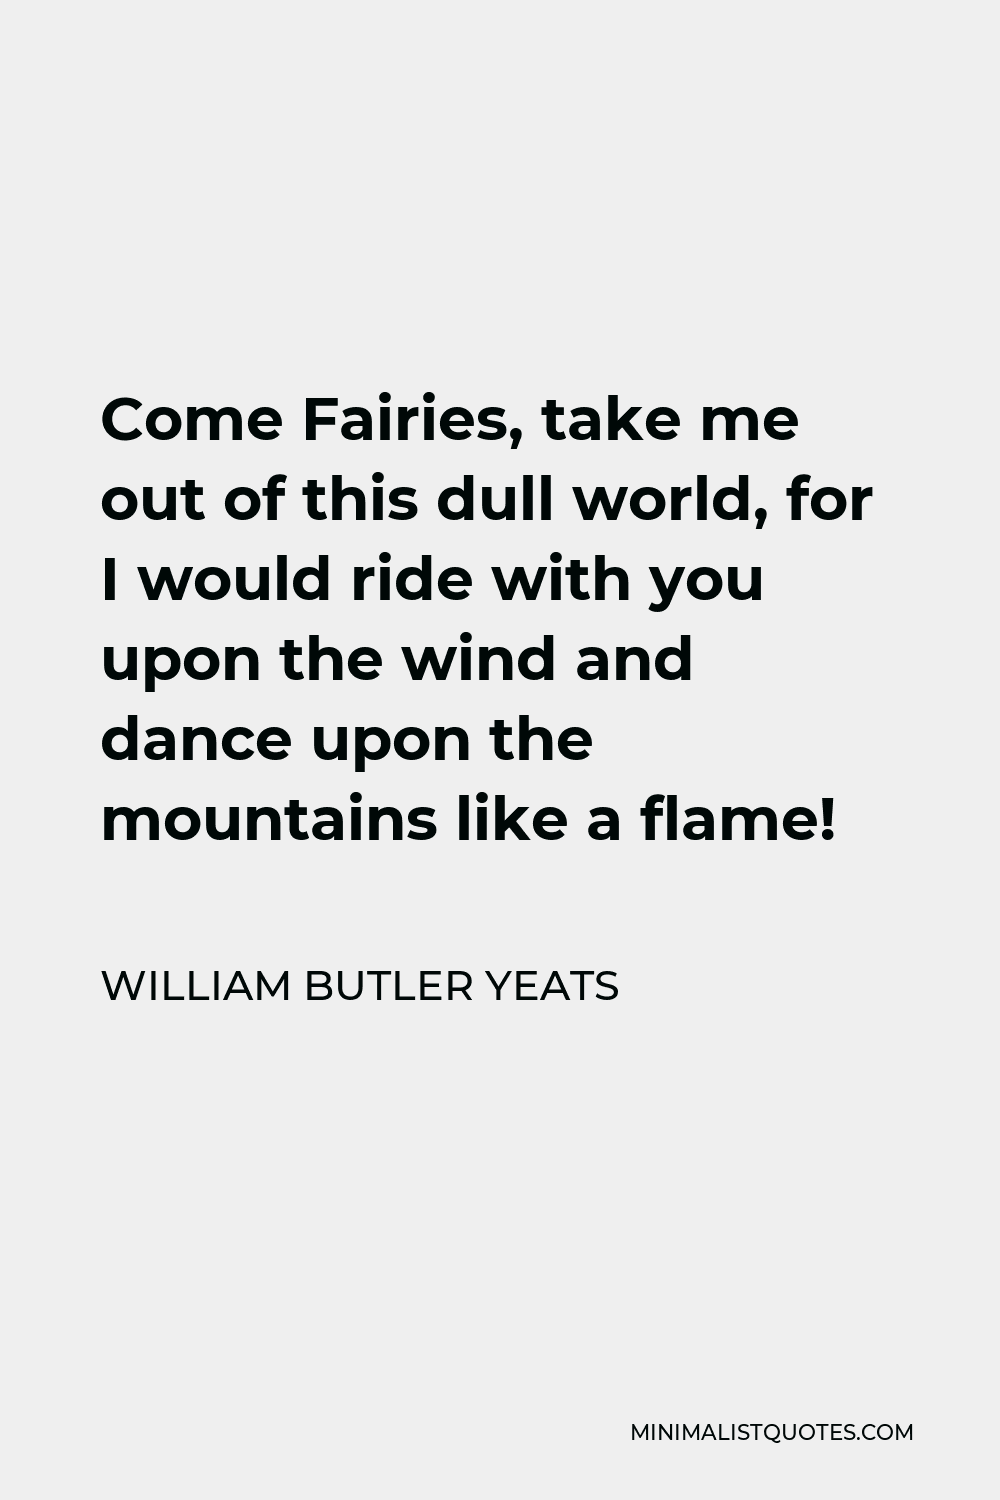 William Butler Yeats Quote - Come Fairies, take me out of this dull world, for I would ride with you upon the wind and dance upon the mountains like a flame!